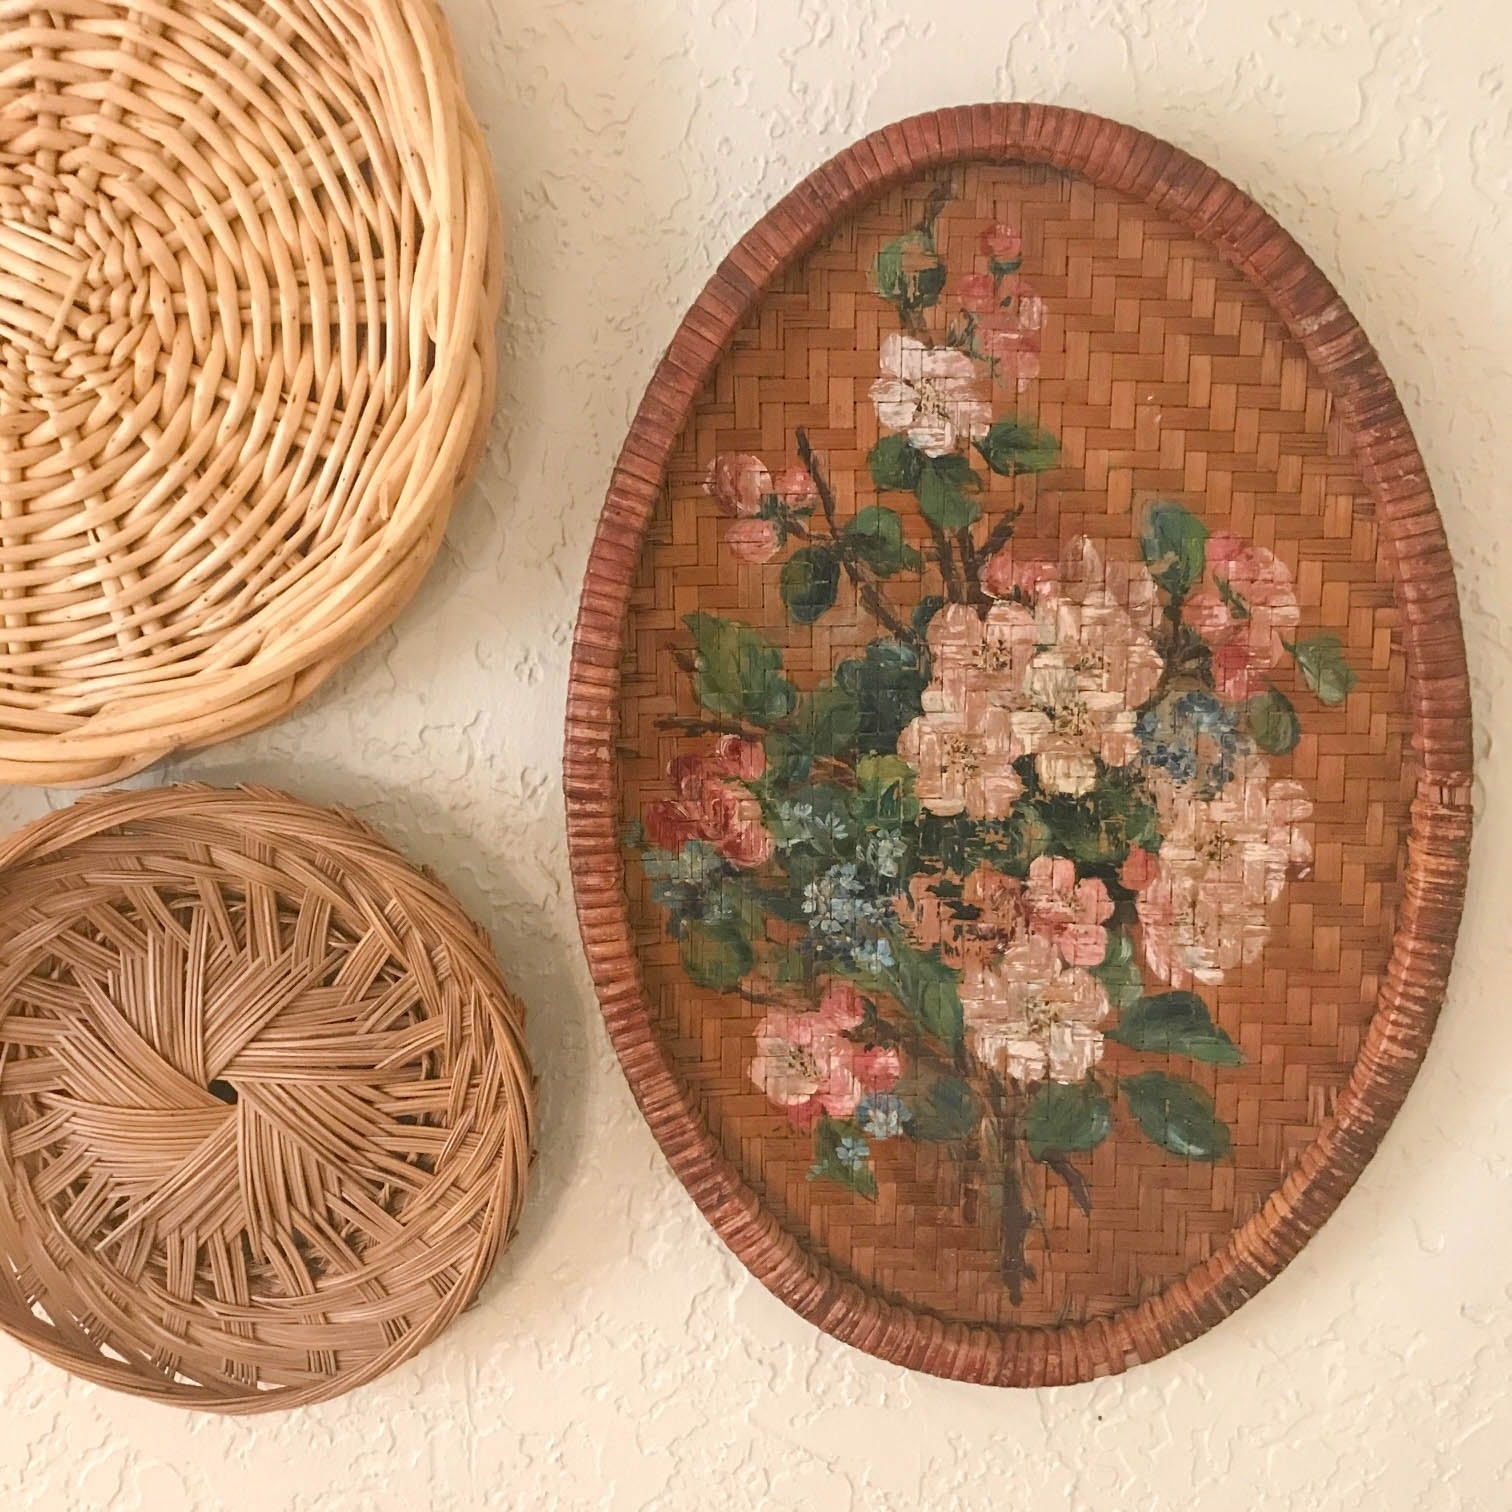 Image Gallery Of Woven Basket Wall Art